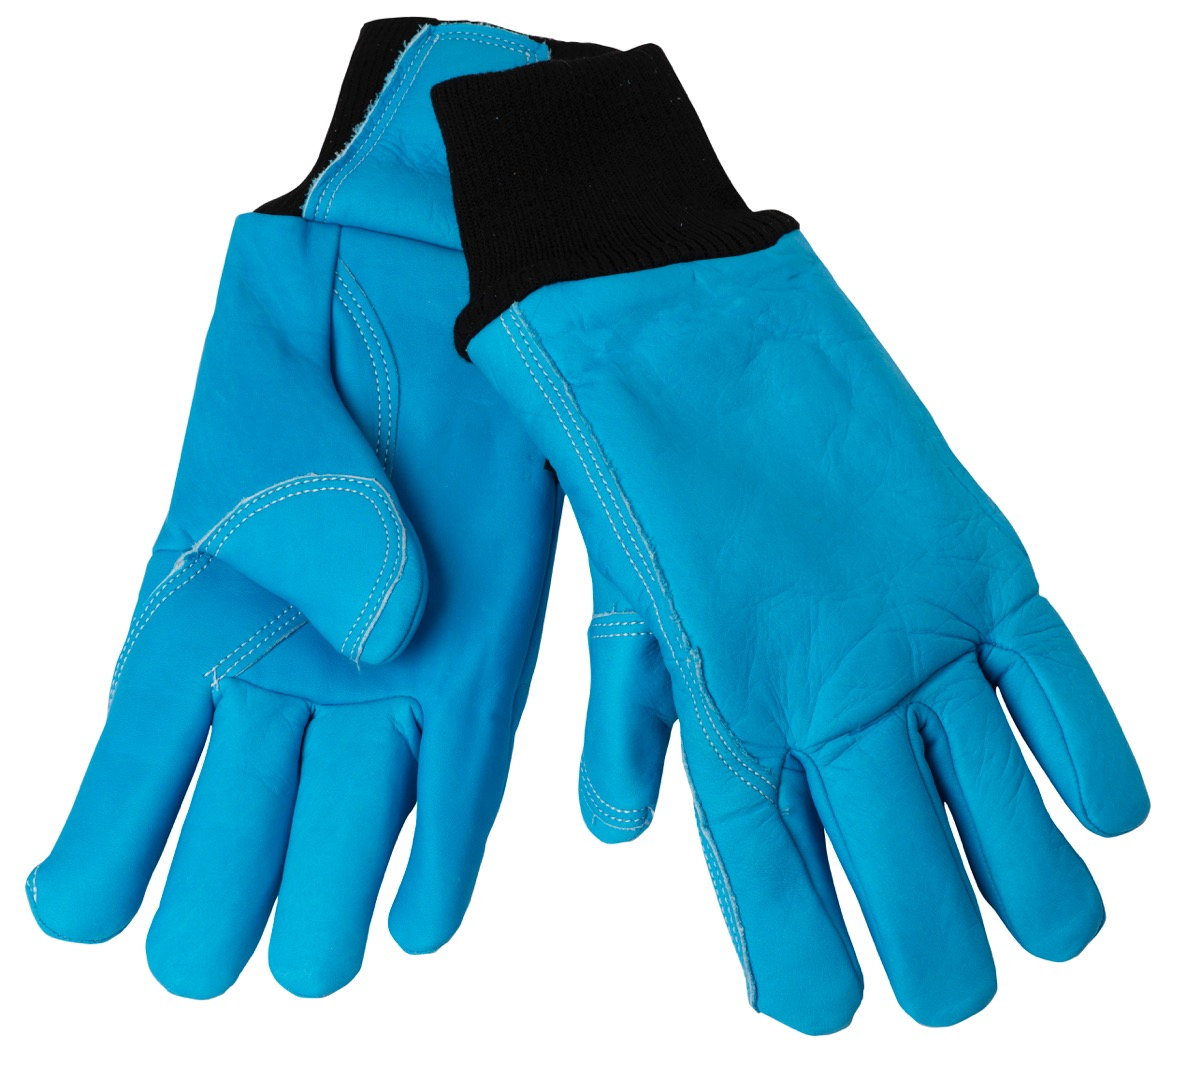 HIDE GLOVES NO BGROUND.jpg